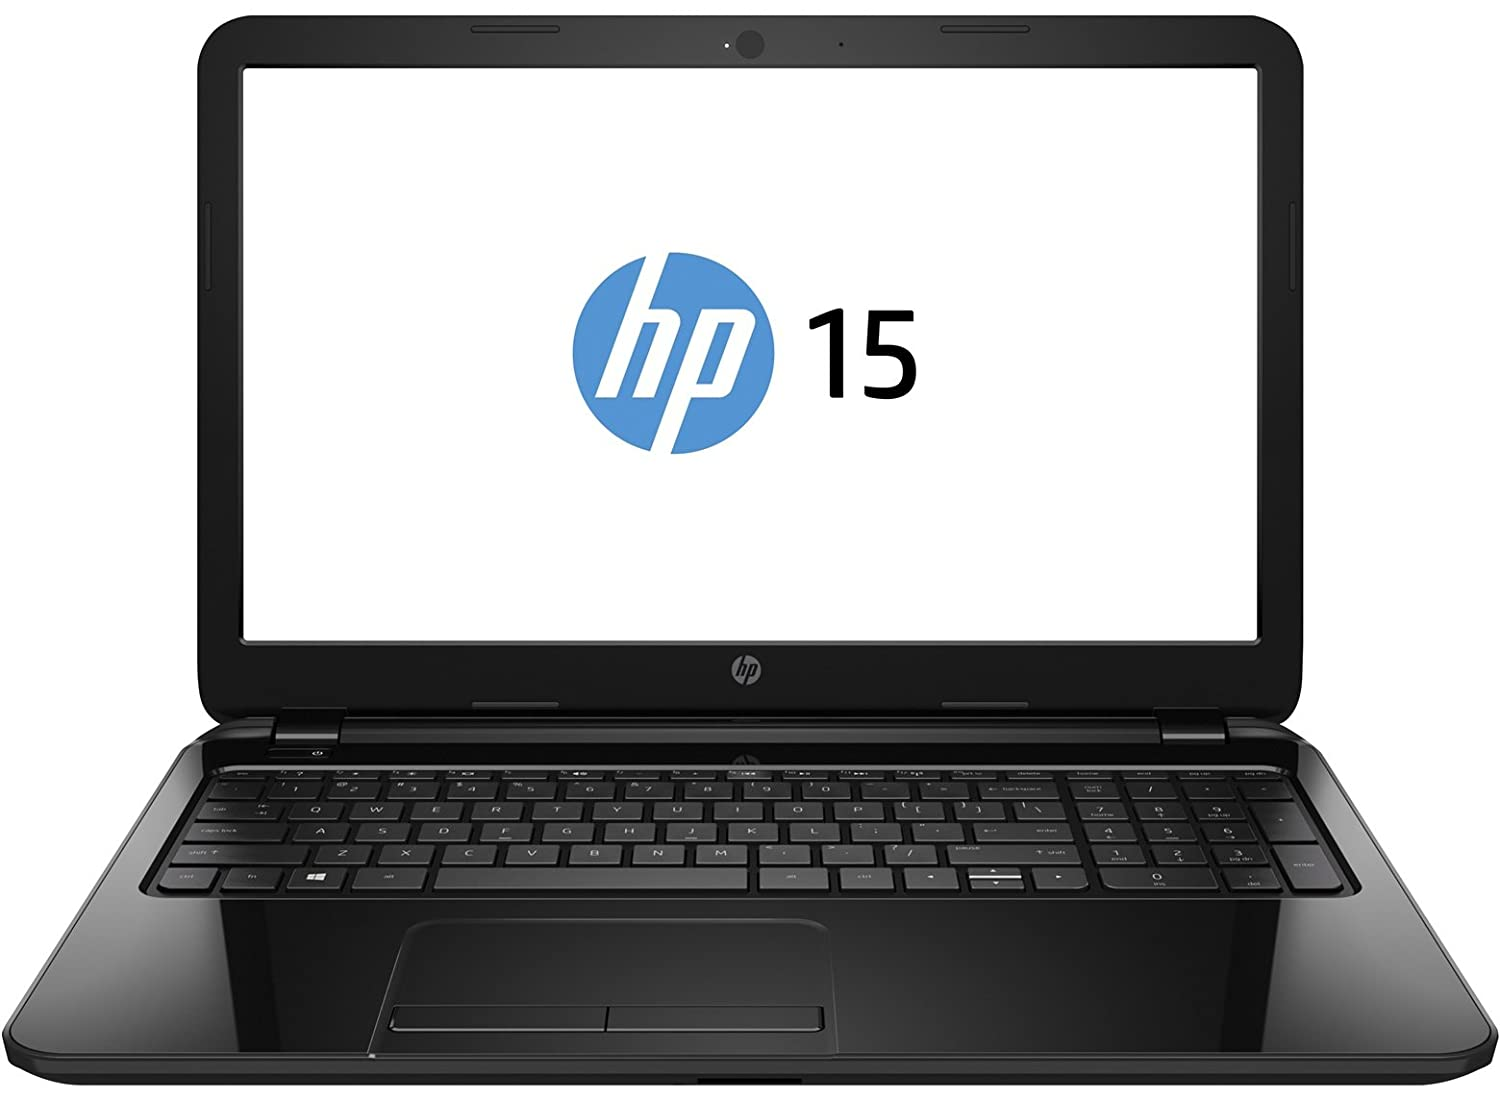 HP 15-G 15 6 Laptop - AMD A8-Series, 4GB Memory, 750GB Hard Drive, Windows  8 1, Black Licorice